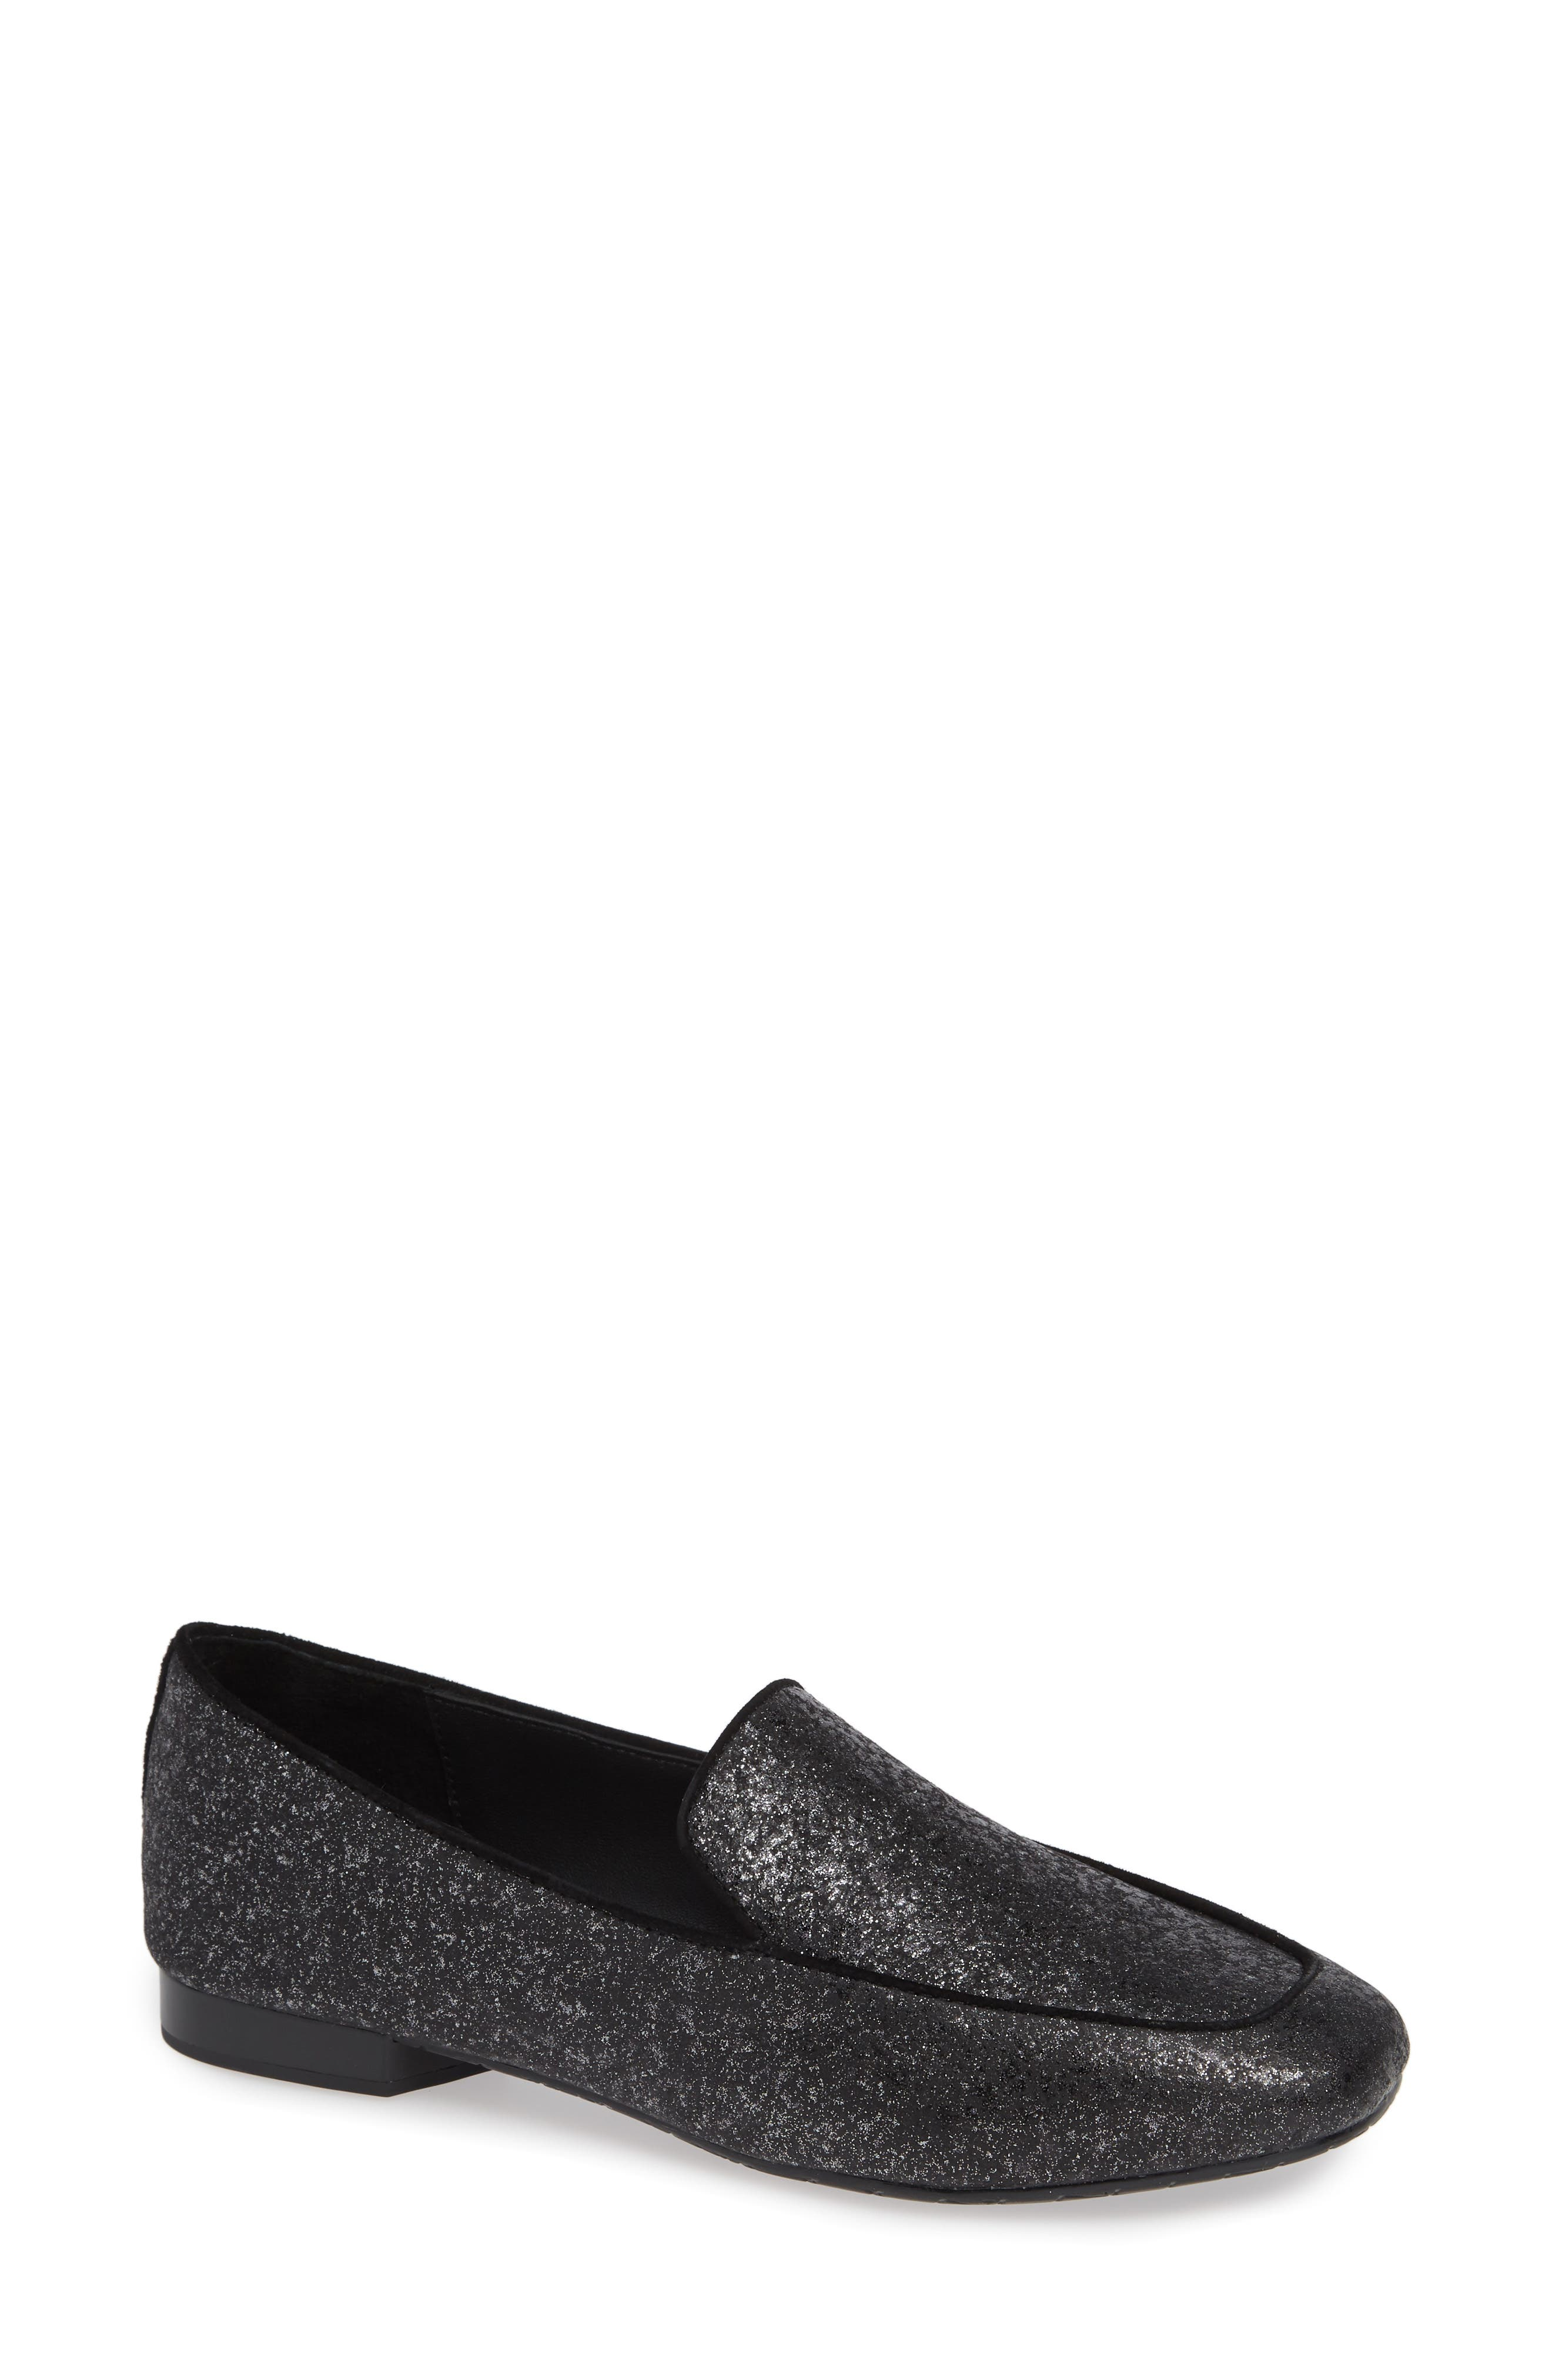 Heddy Loafer,                         Main,                         color, SILVER GLITTER SUEDE